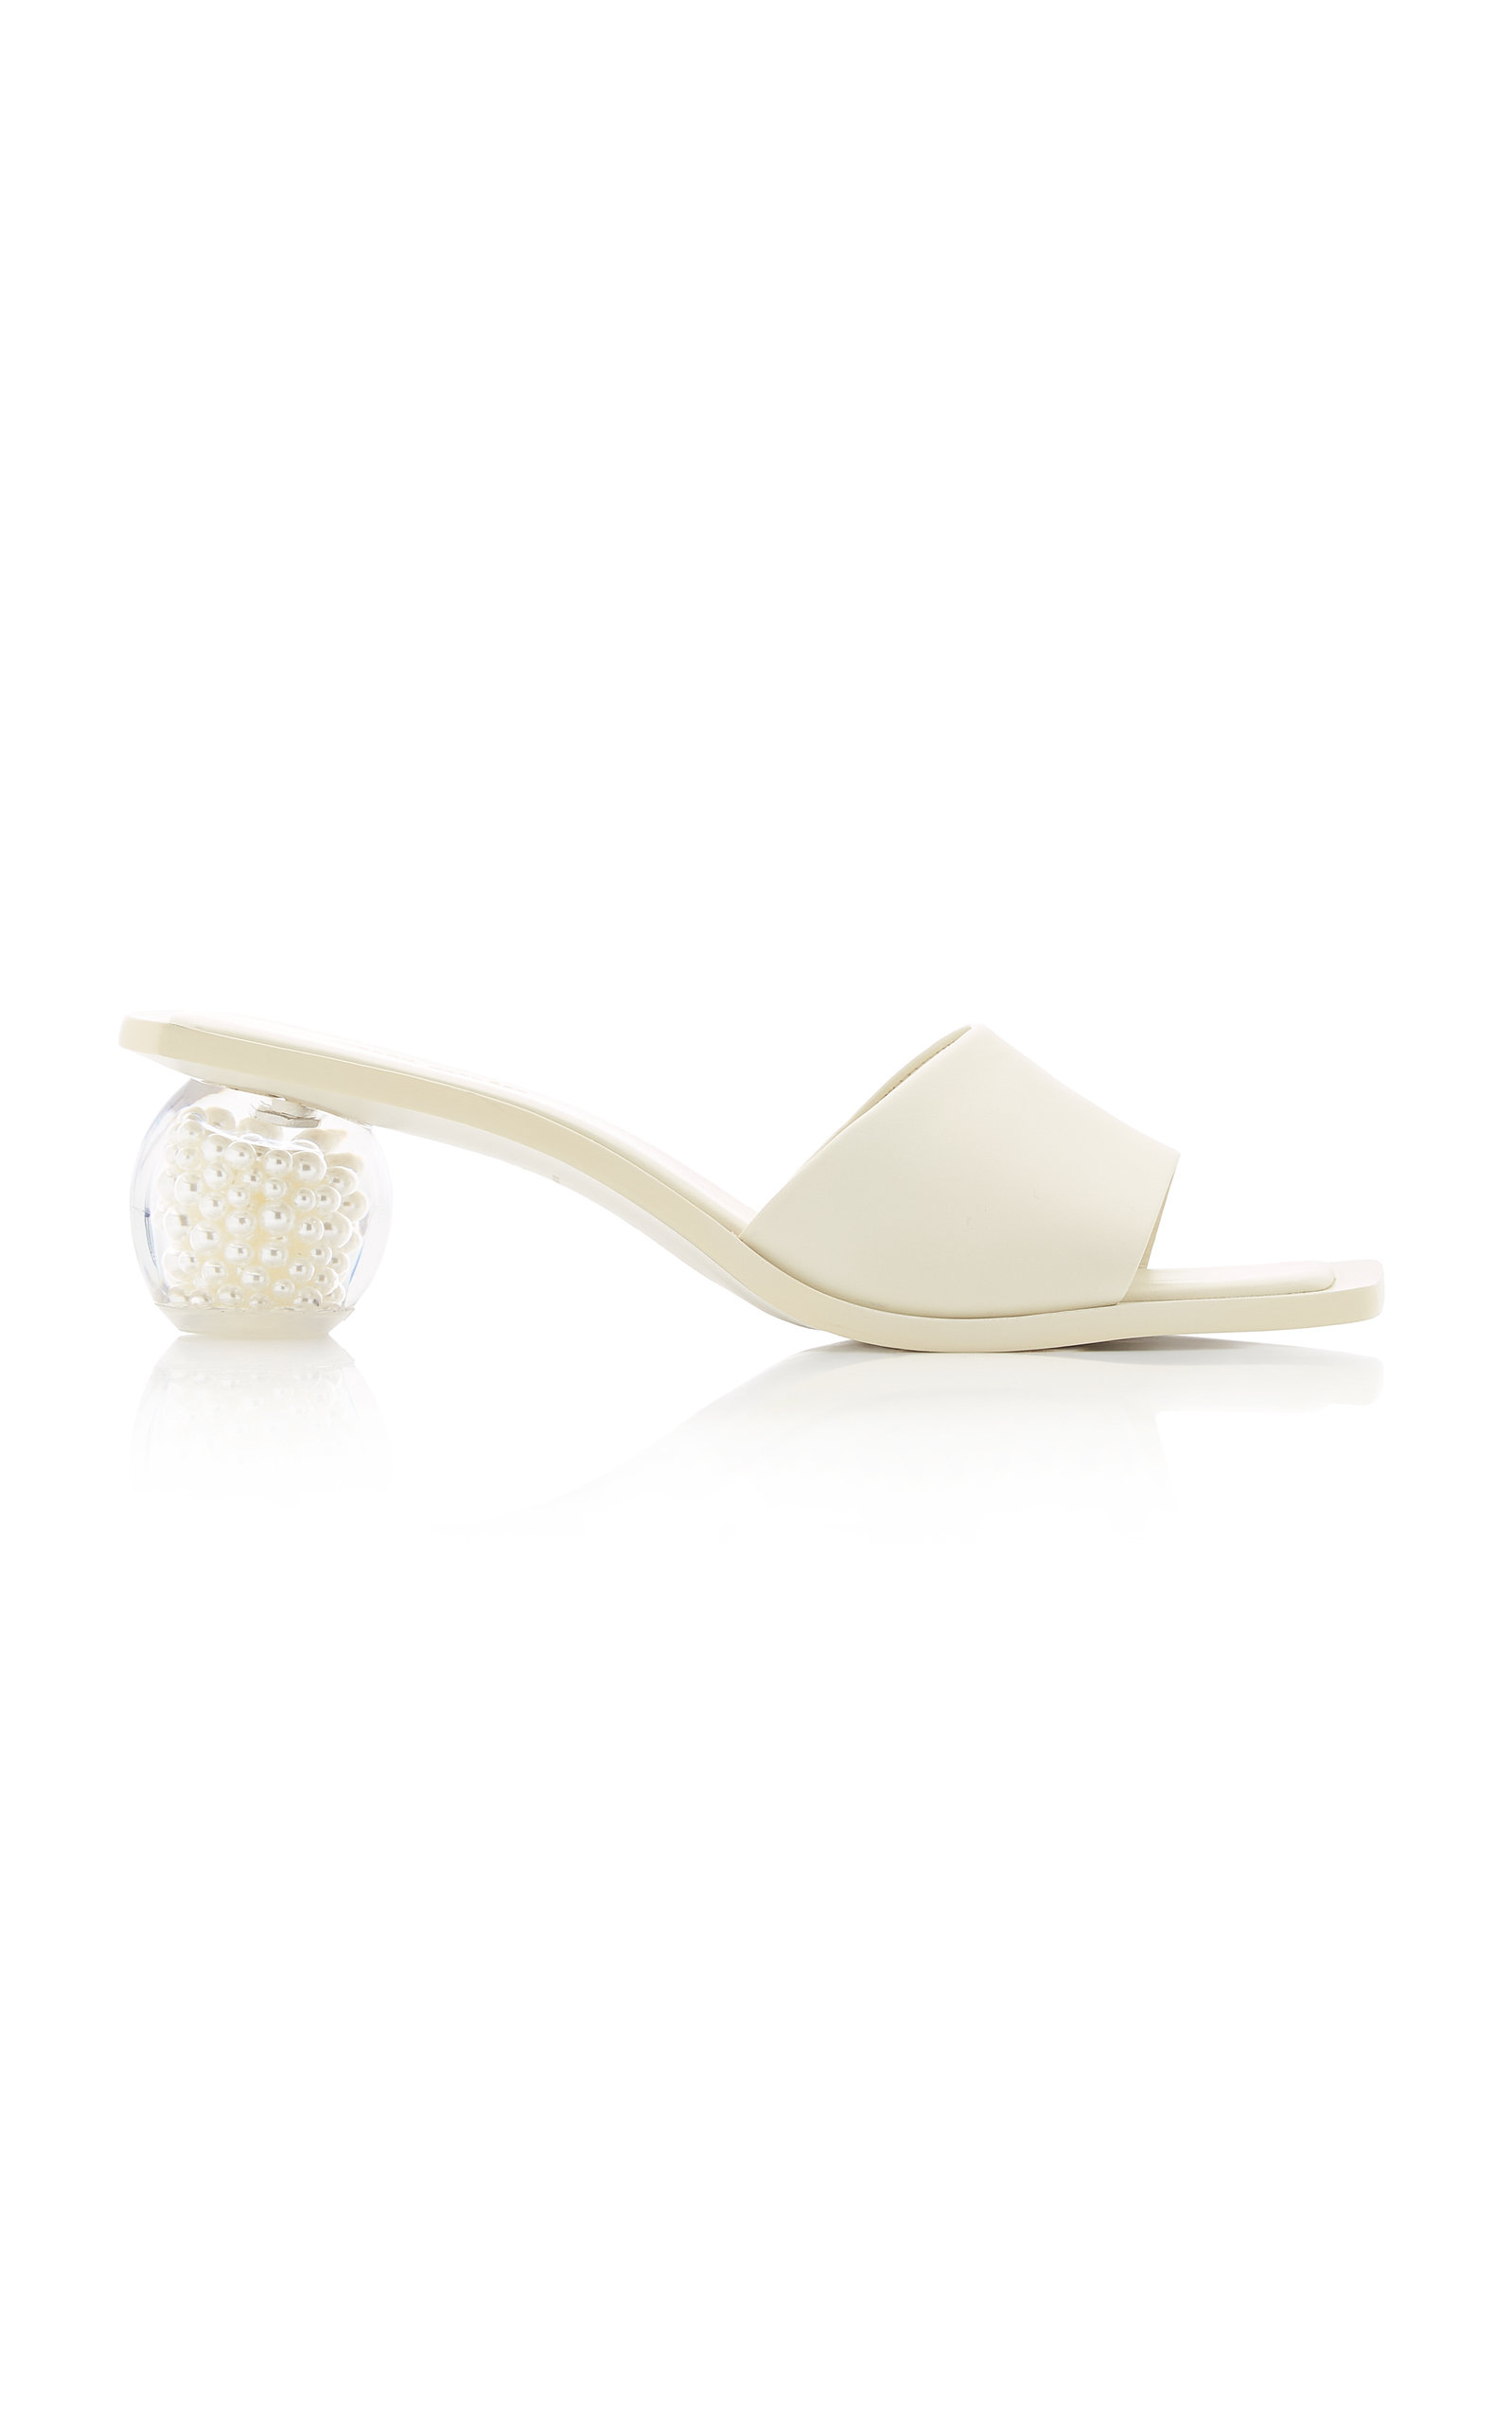 Cult Gaia TAO PEARL LEATHER SANDALS